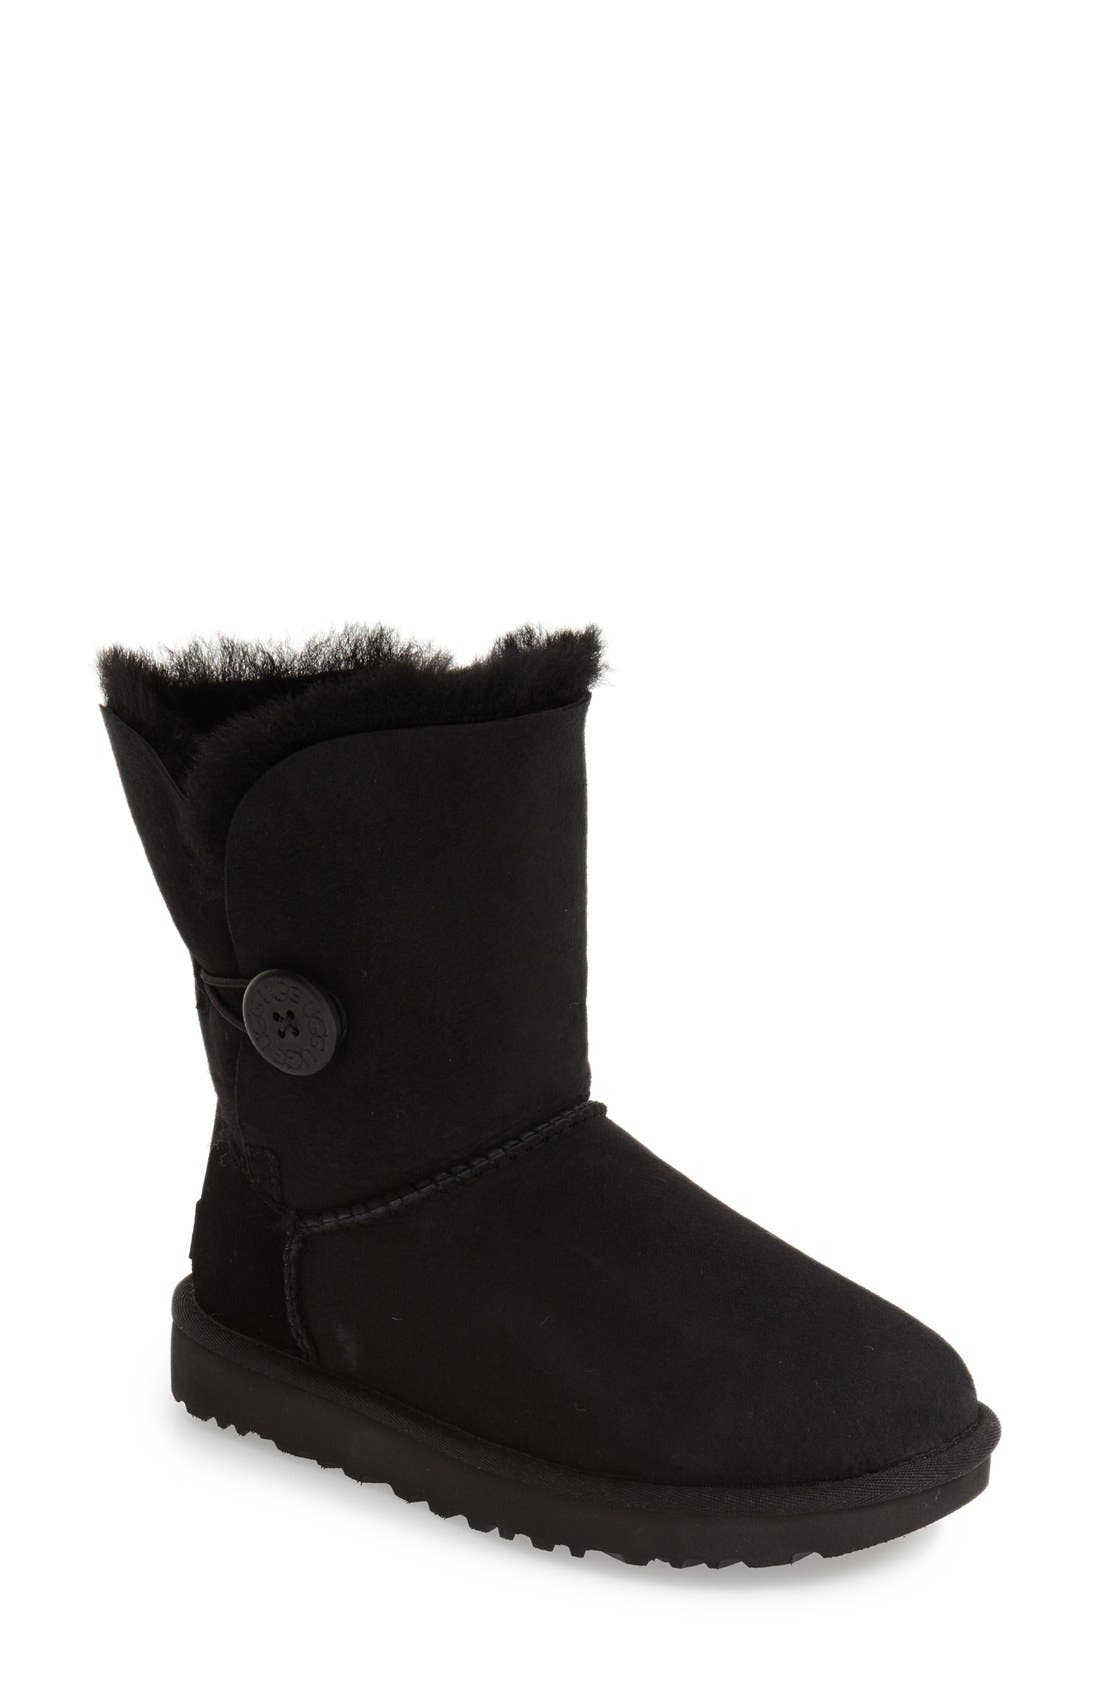 Alternate Image 1 Selected - UGG® 'Bailey Button II' Boot (Women)